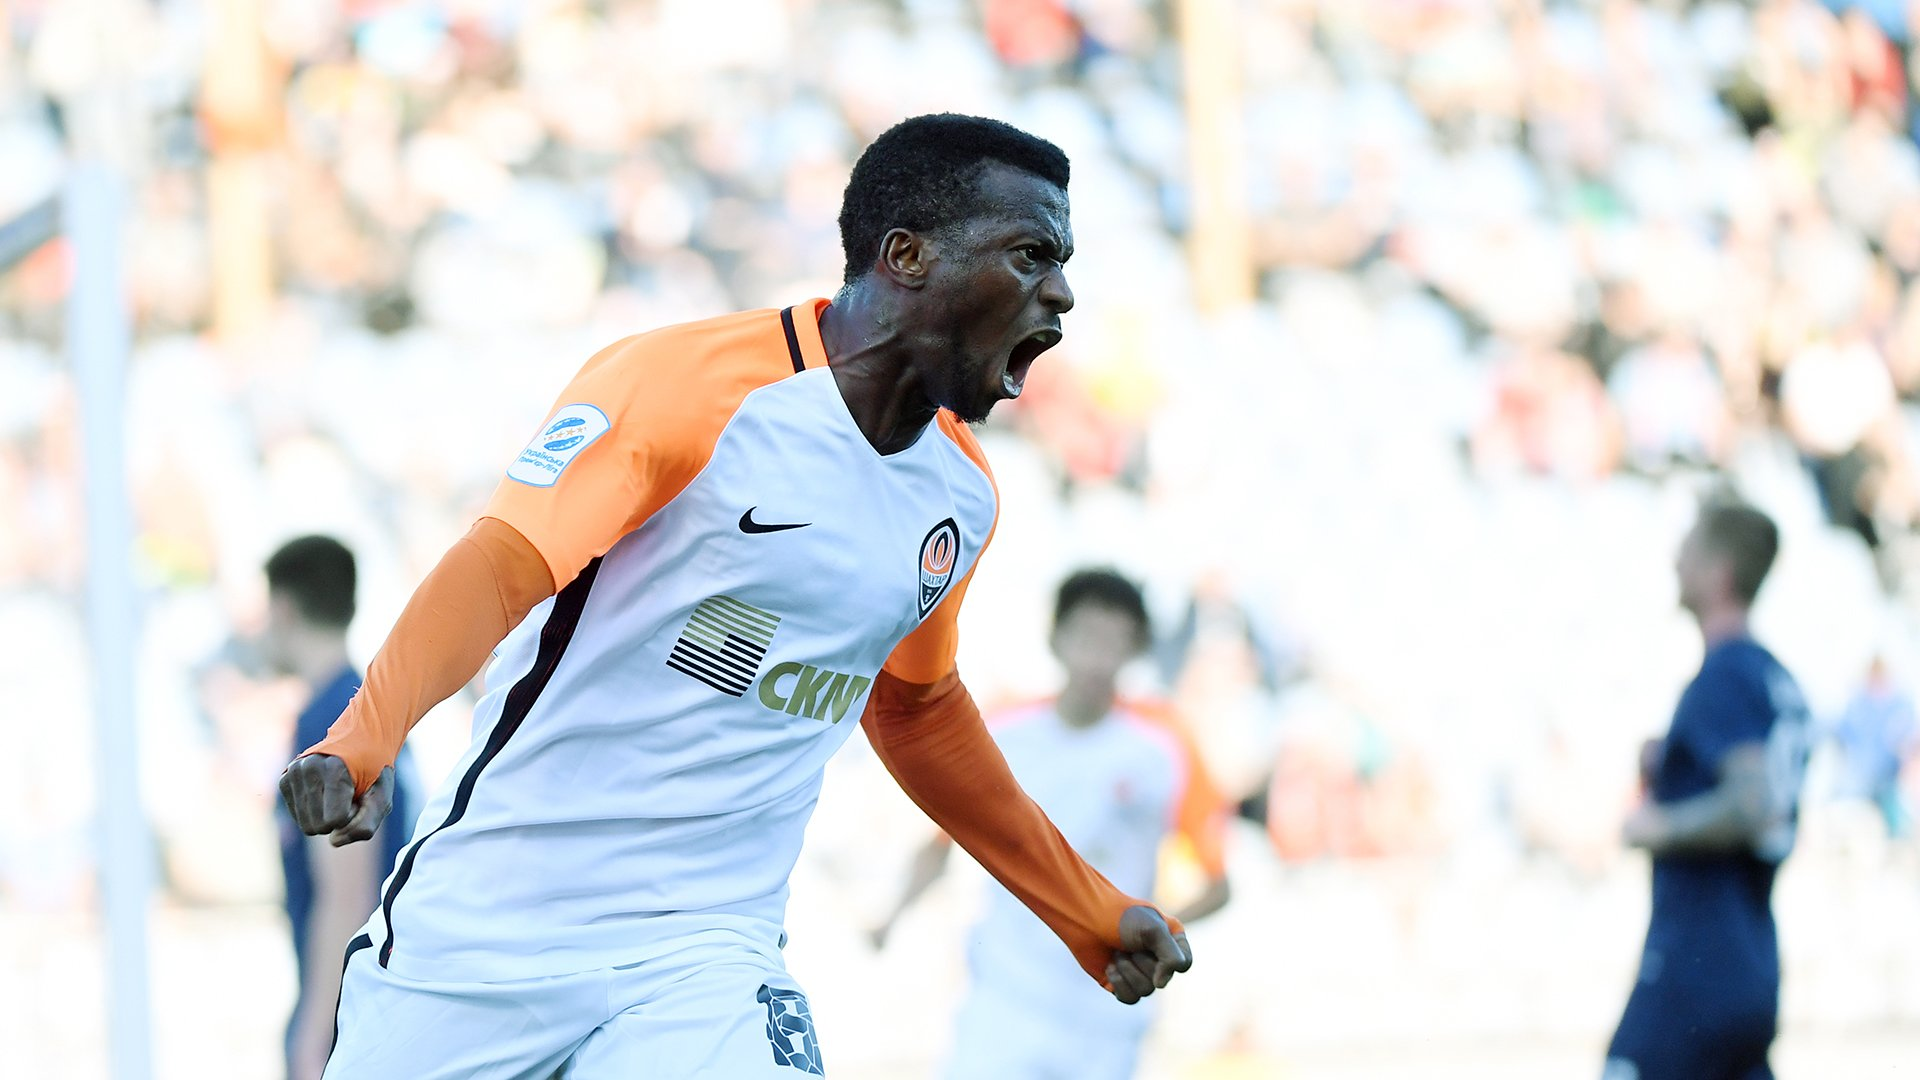 Olanrewaju Targets League Title With Shakhtar Donetsk